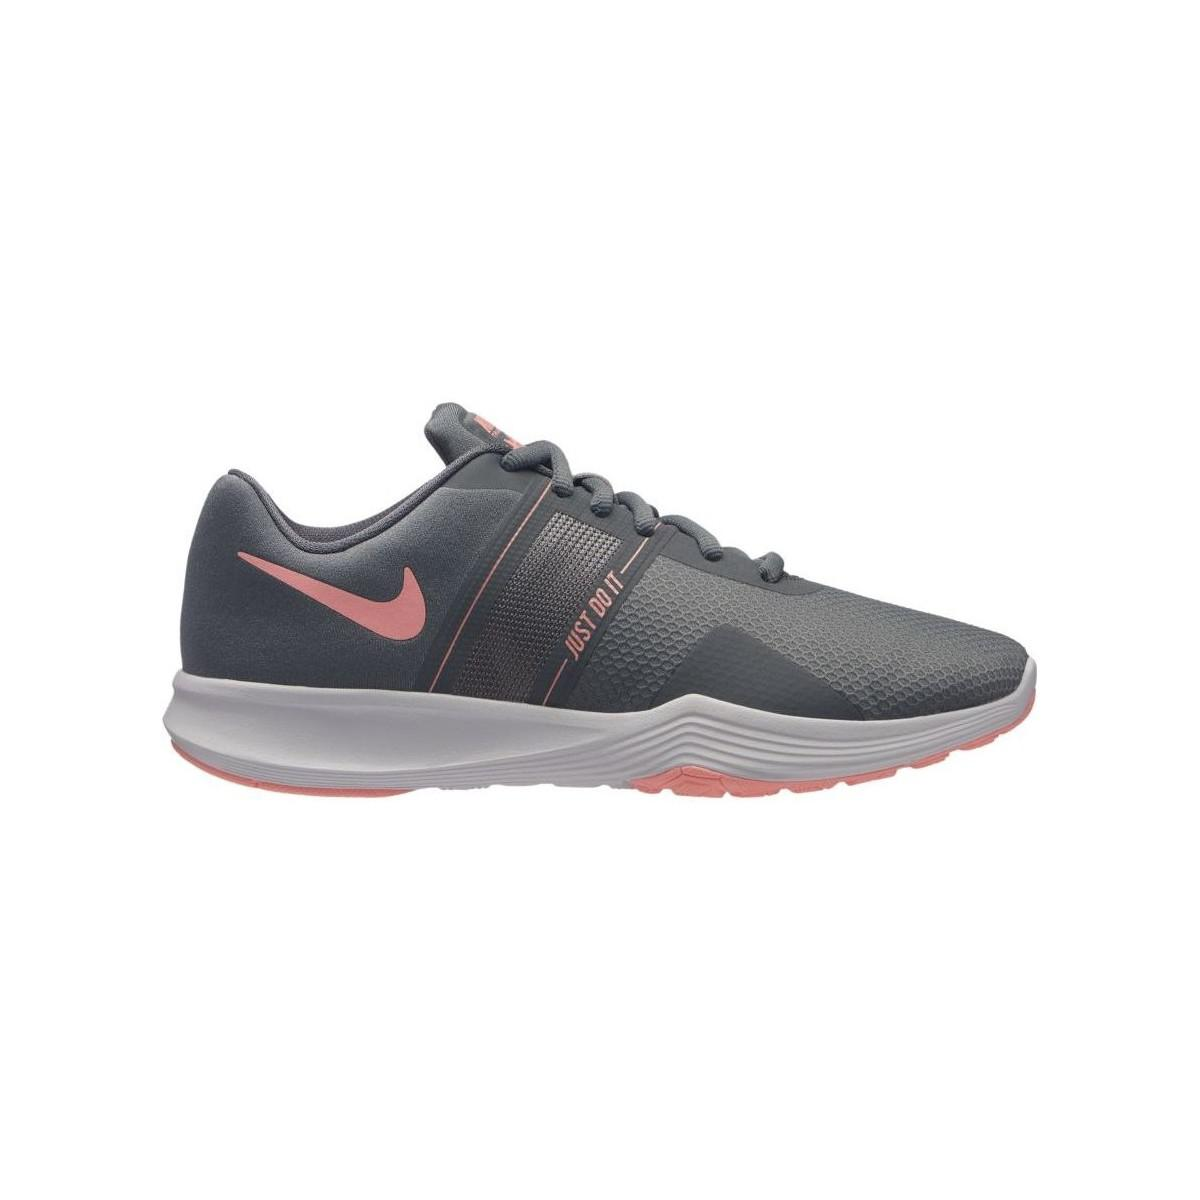 Nike City Trainer 2 Aa7775 Women s Shoes (trainers) In Grey in Gray ... 5aec532eb